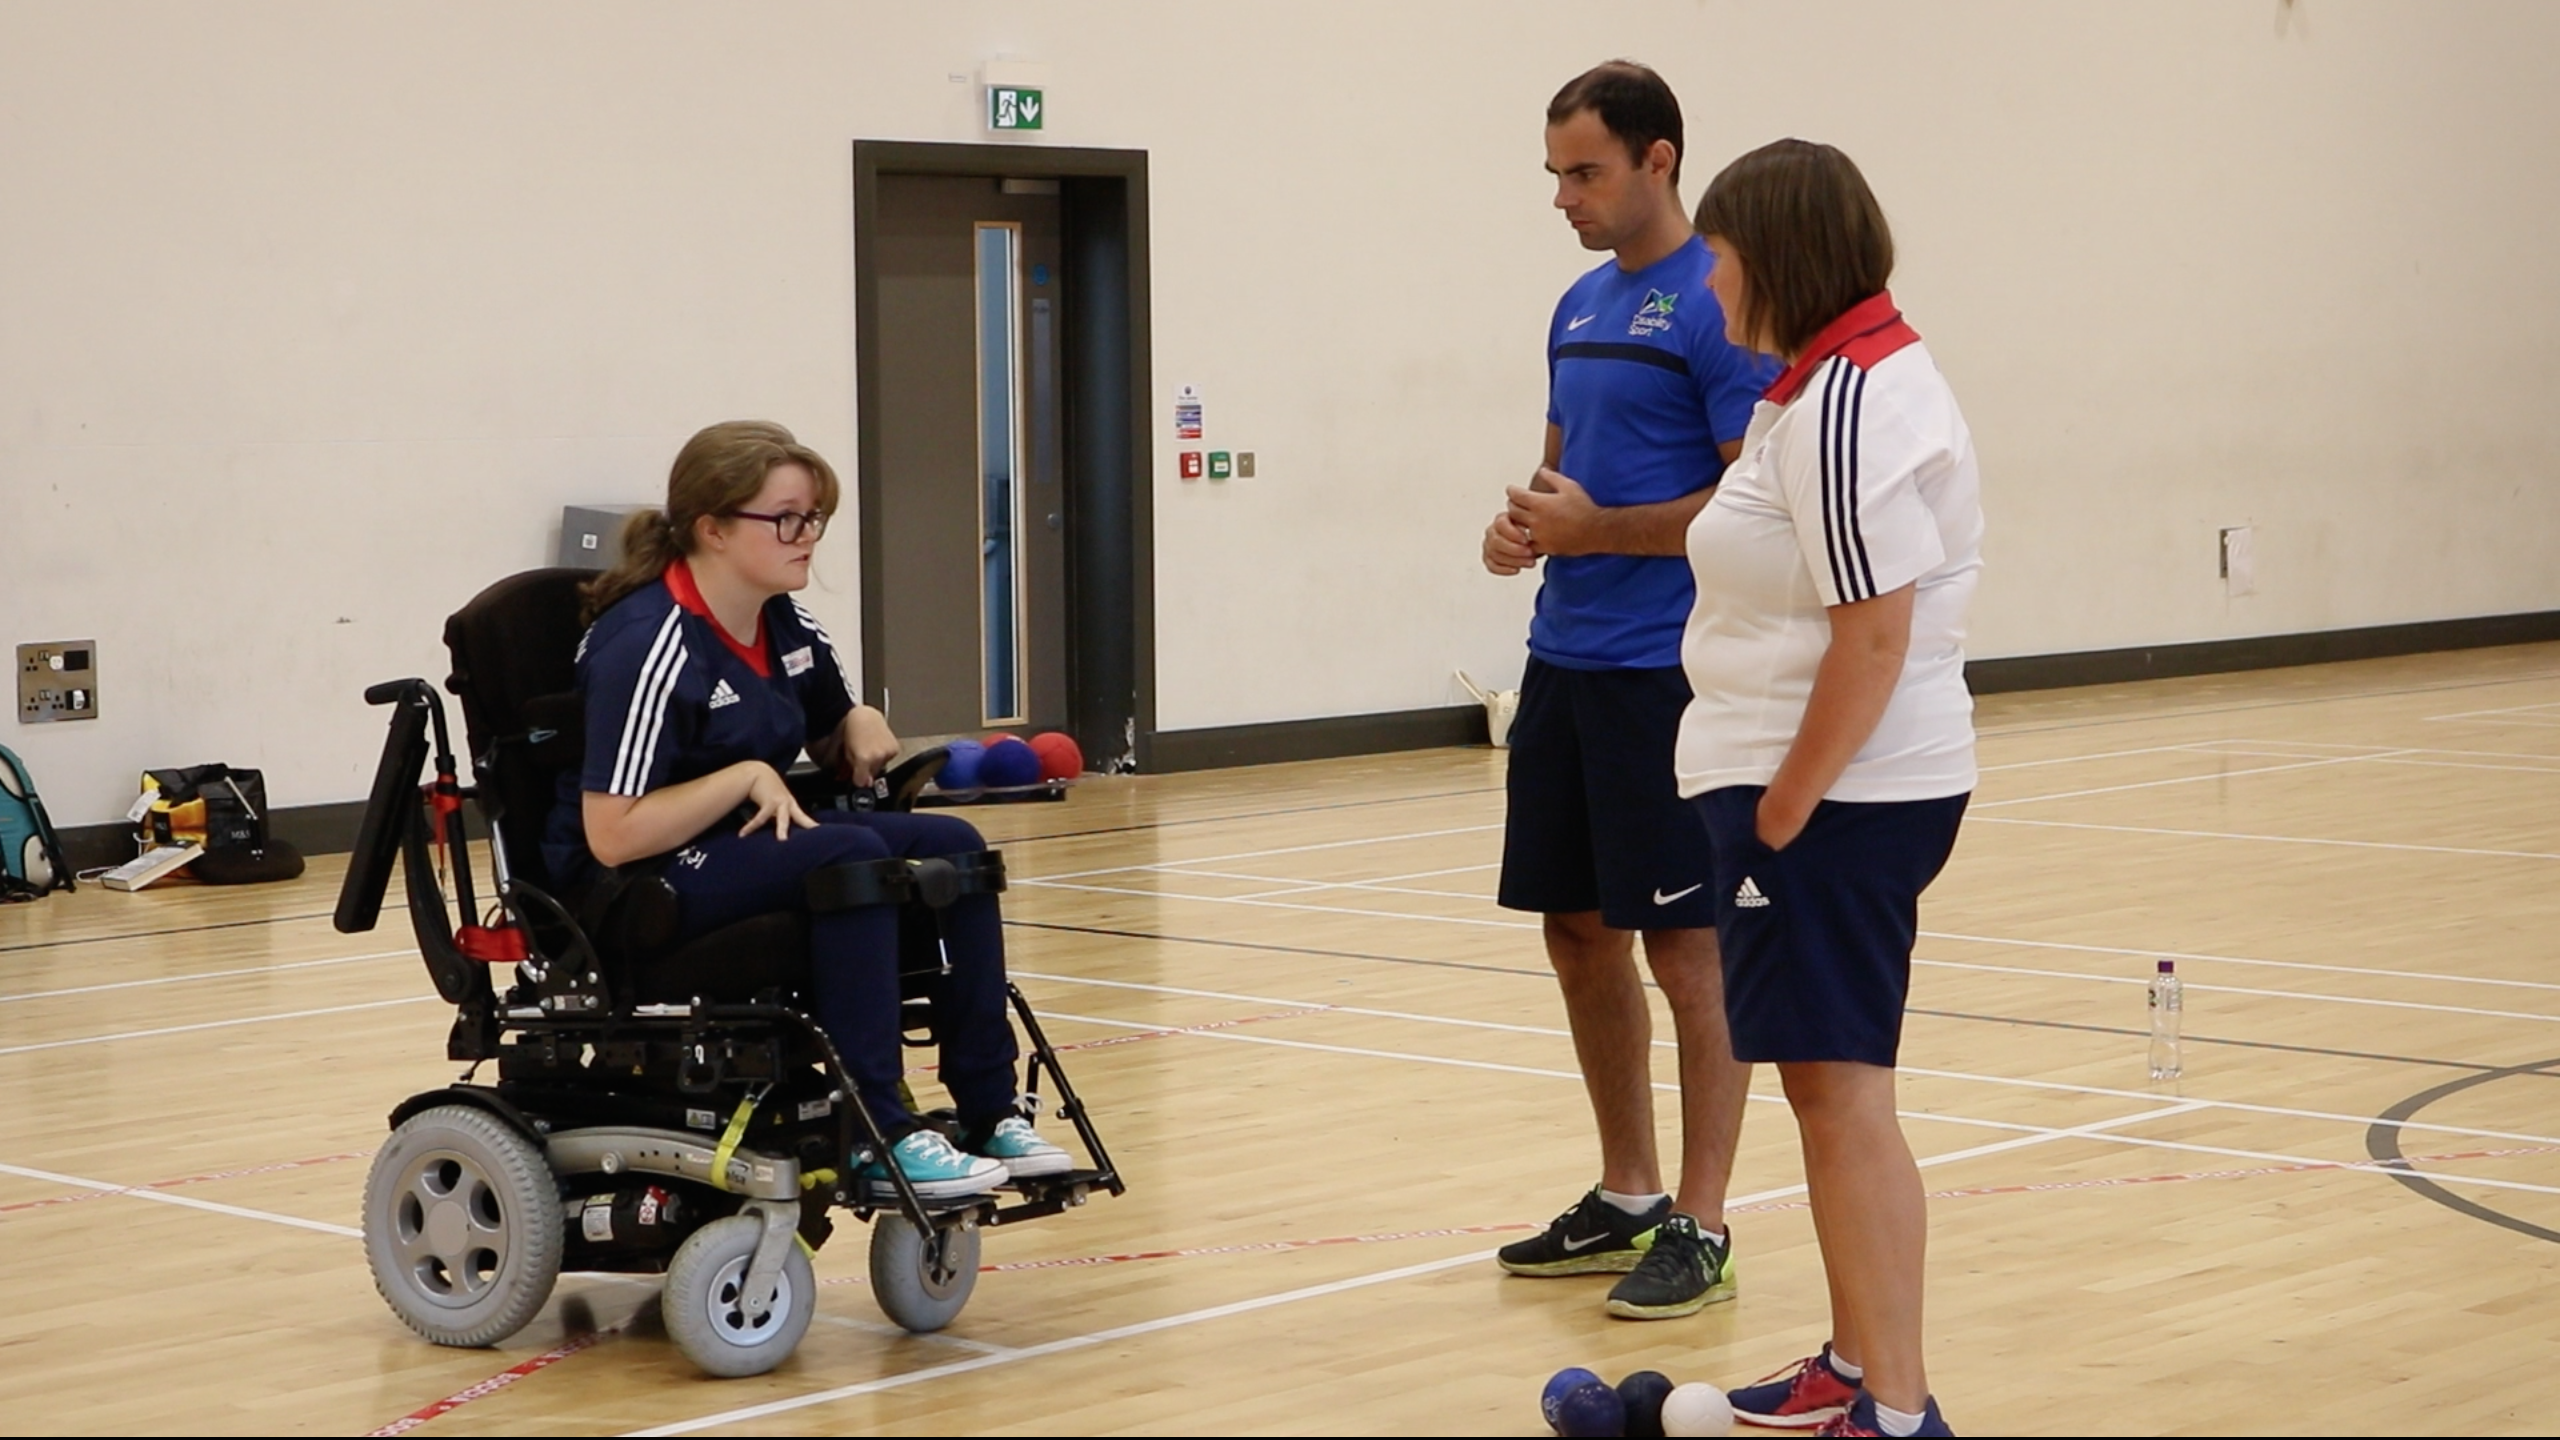 Rio Paralympian Claire Taggart with her home coach Odhran Doherty and GB coach Claire.